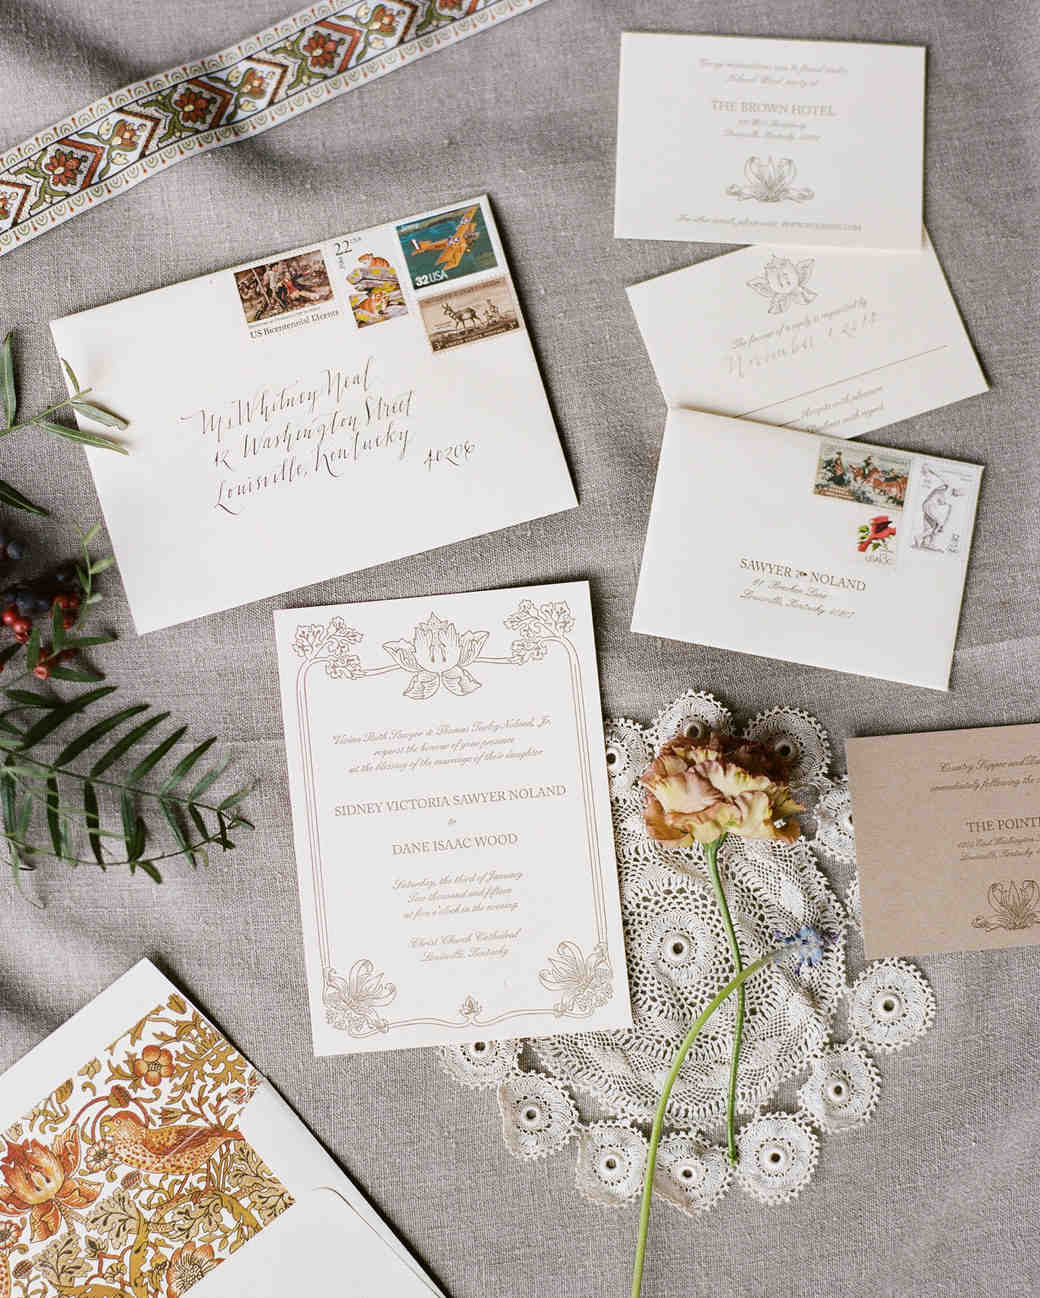 Mailing wedding gifts etiquette